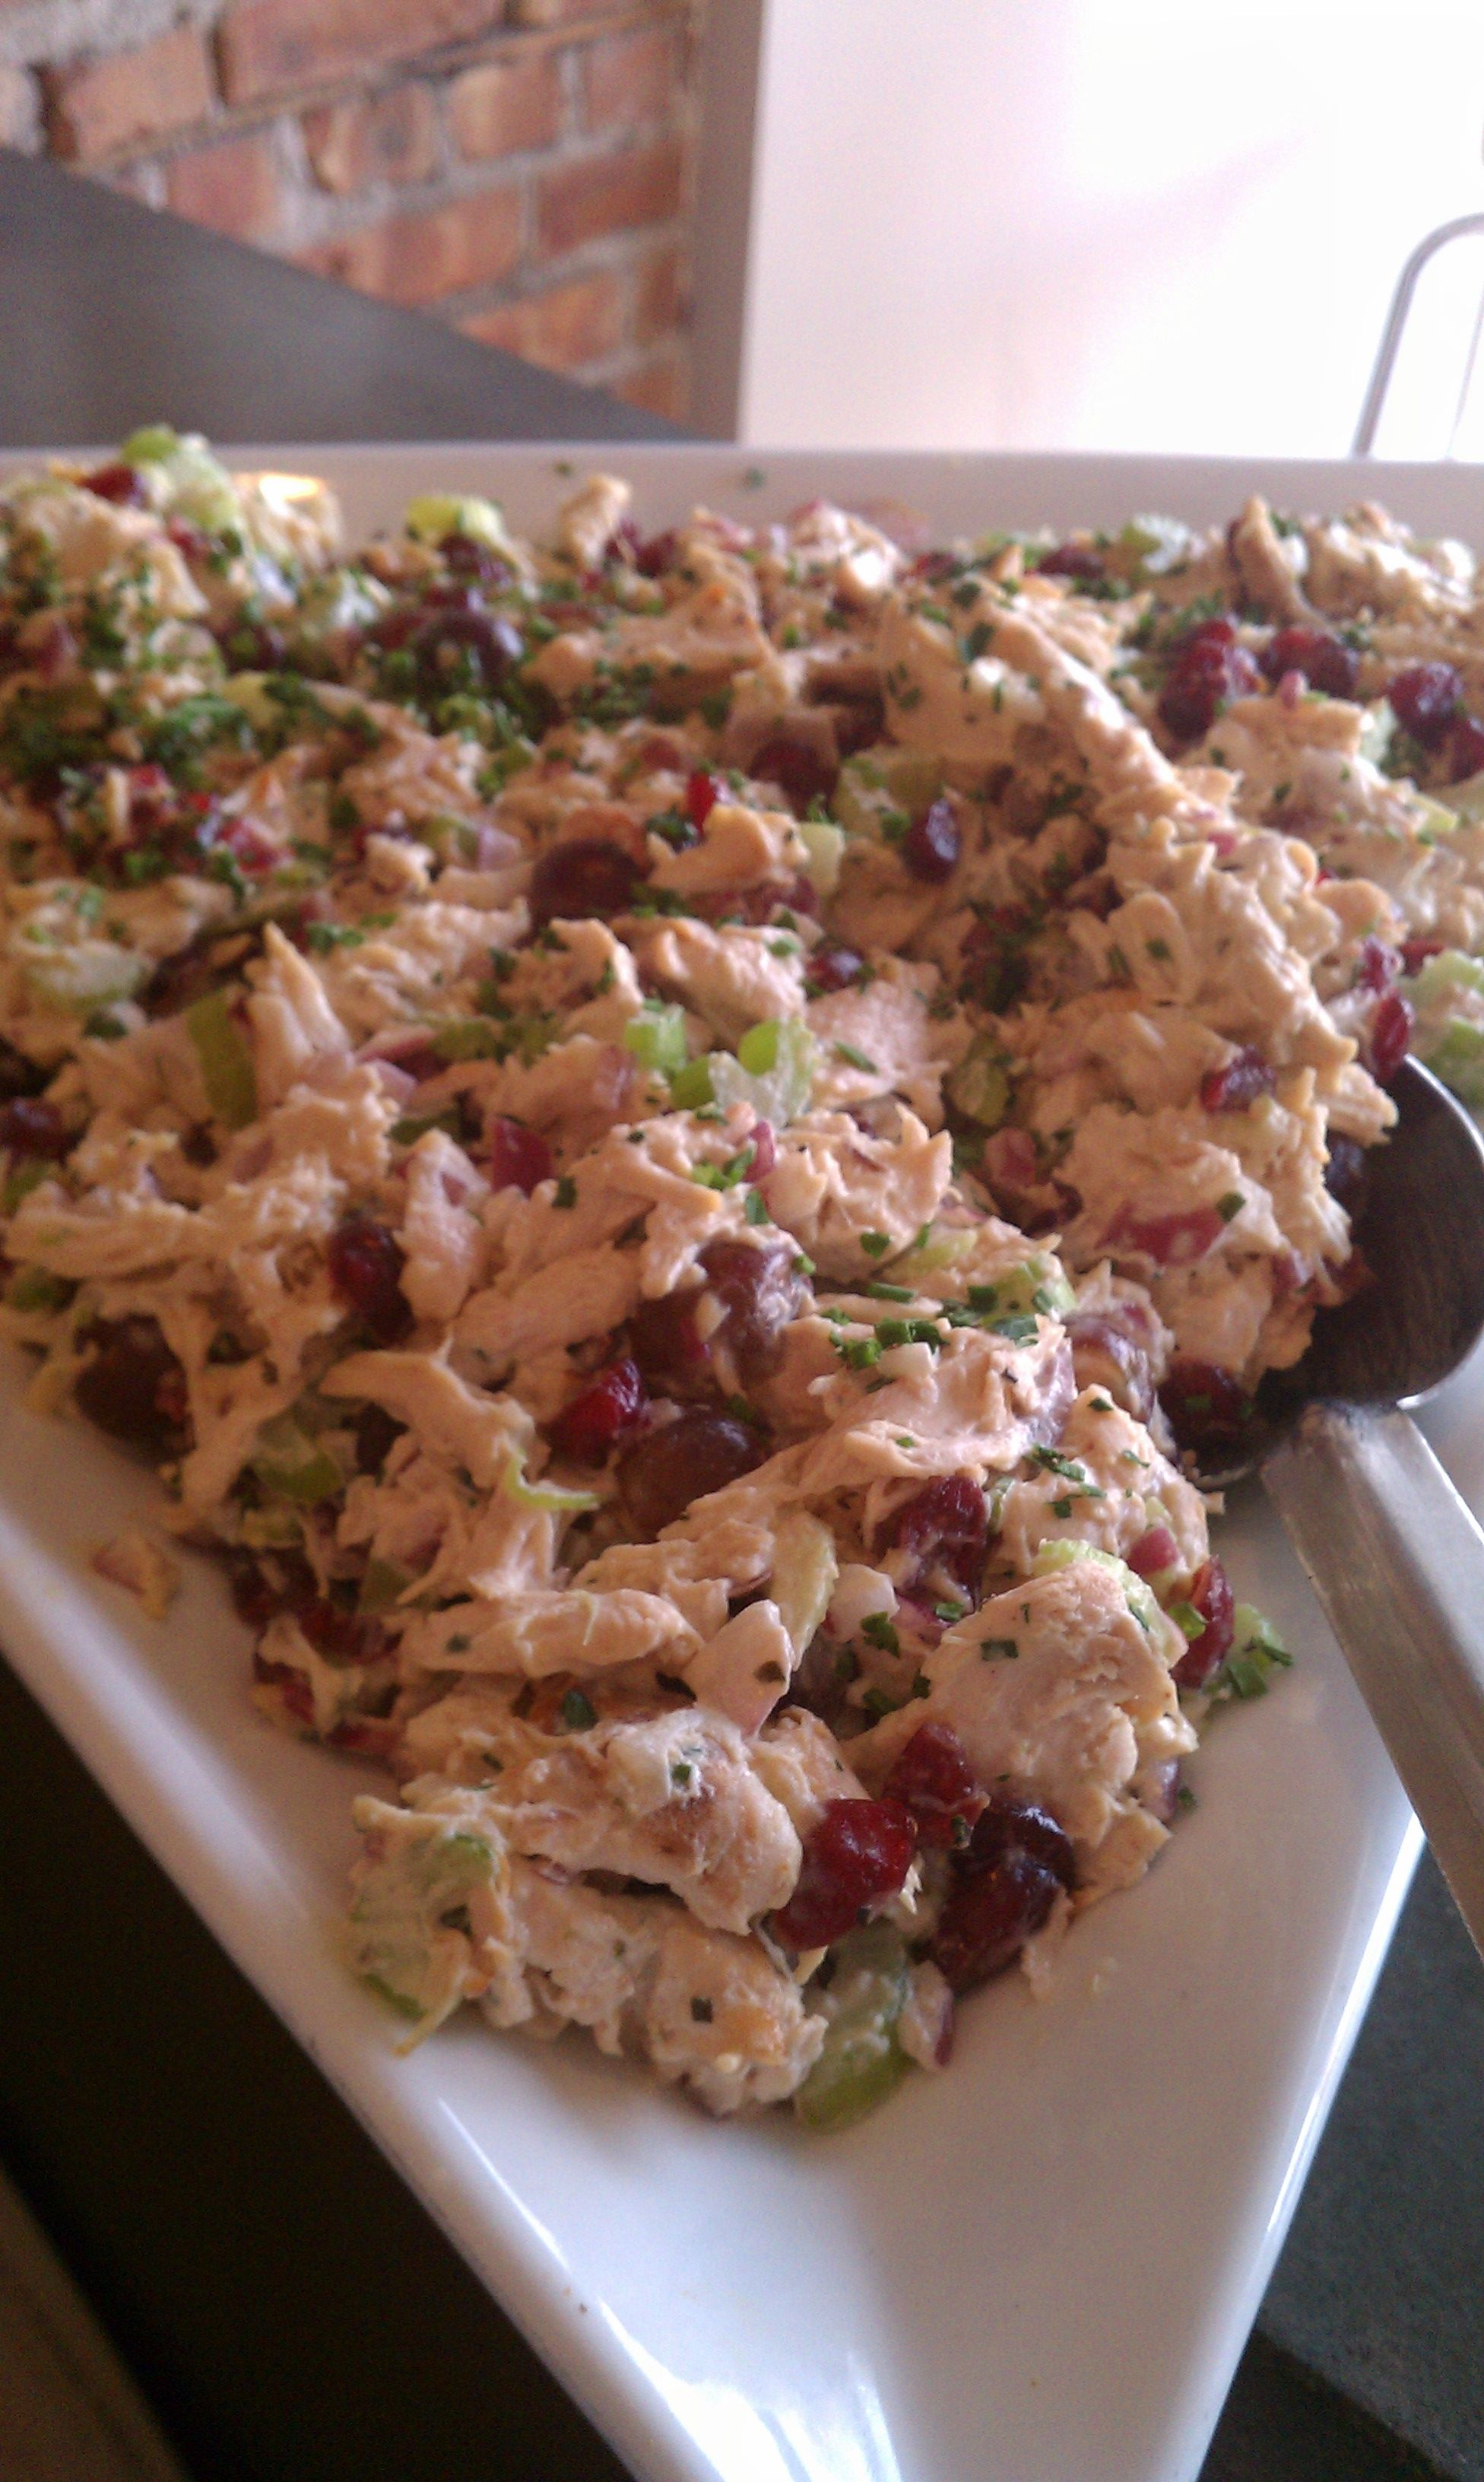 Amish Chicken Salad Making This In The Morning Before Work Amish Recipes Amish Chicken